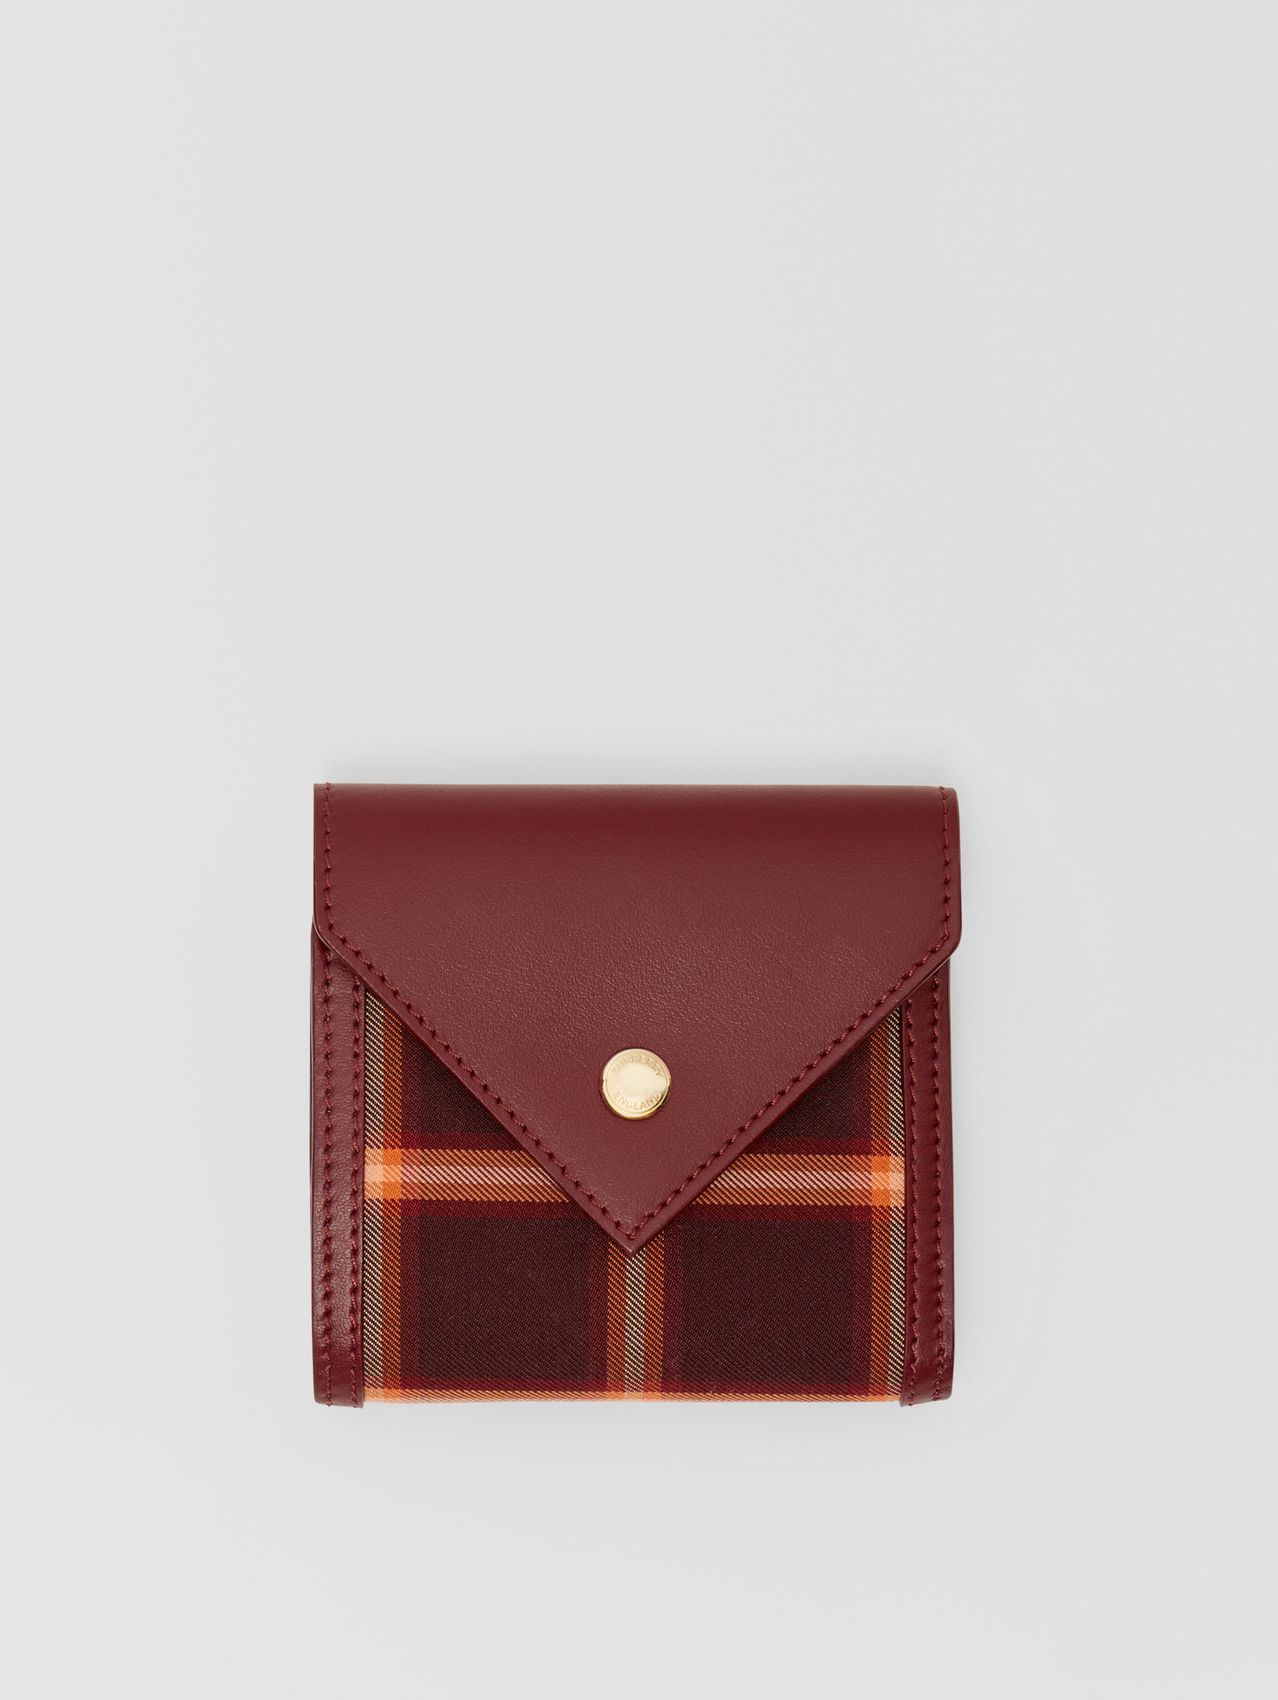 Tartan Technical Cotton and Leather Folding Wallet in Burgundy